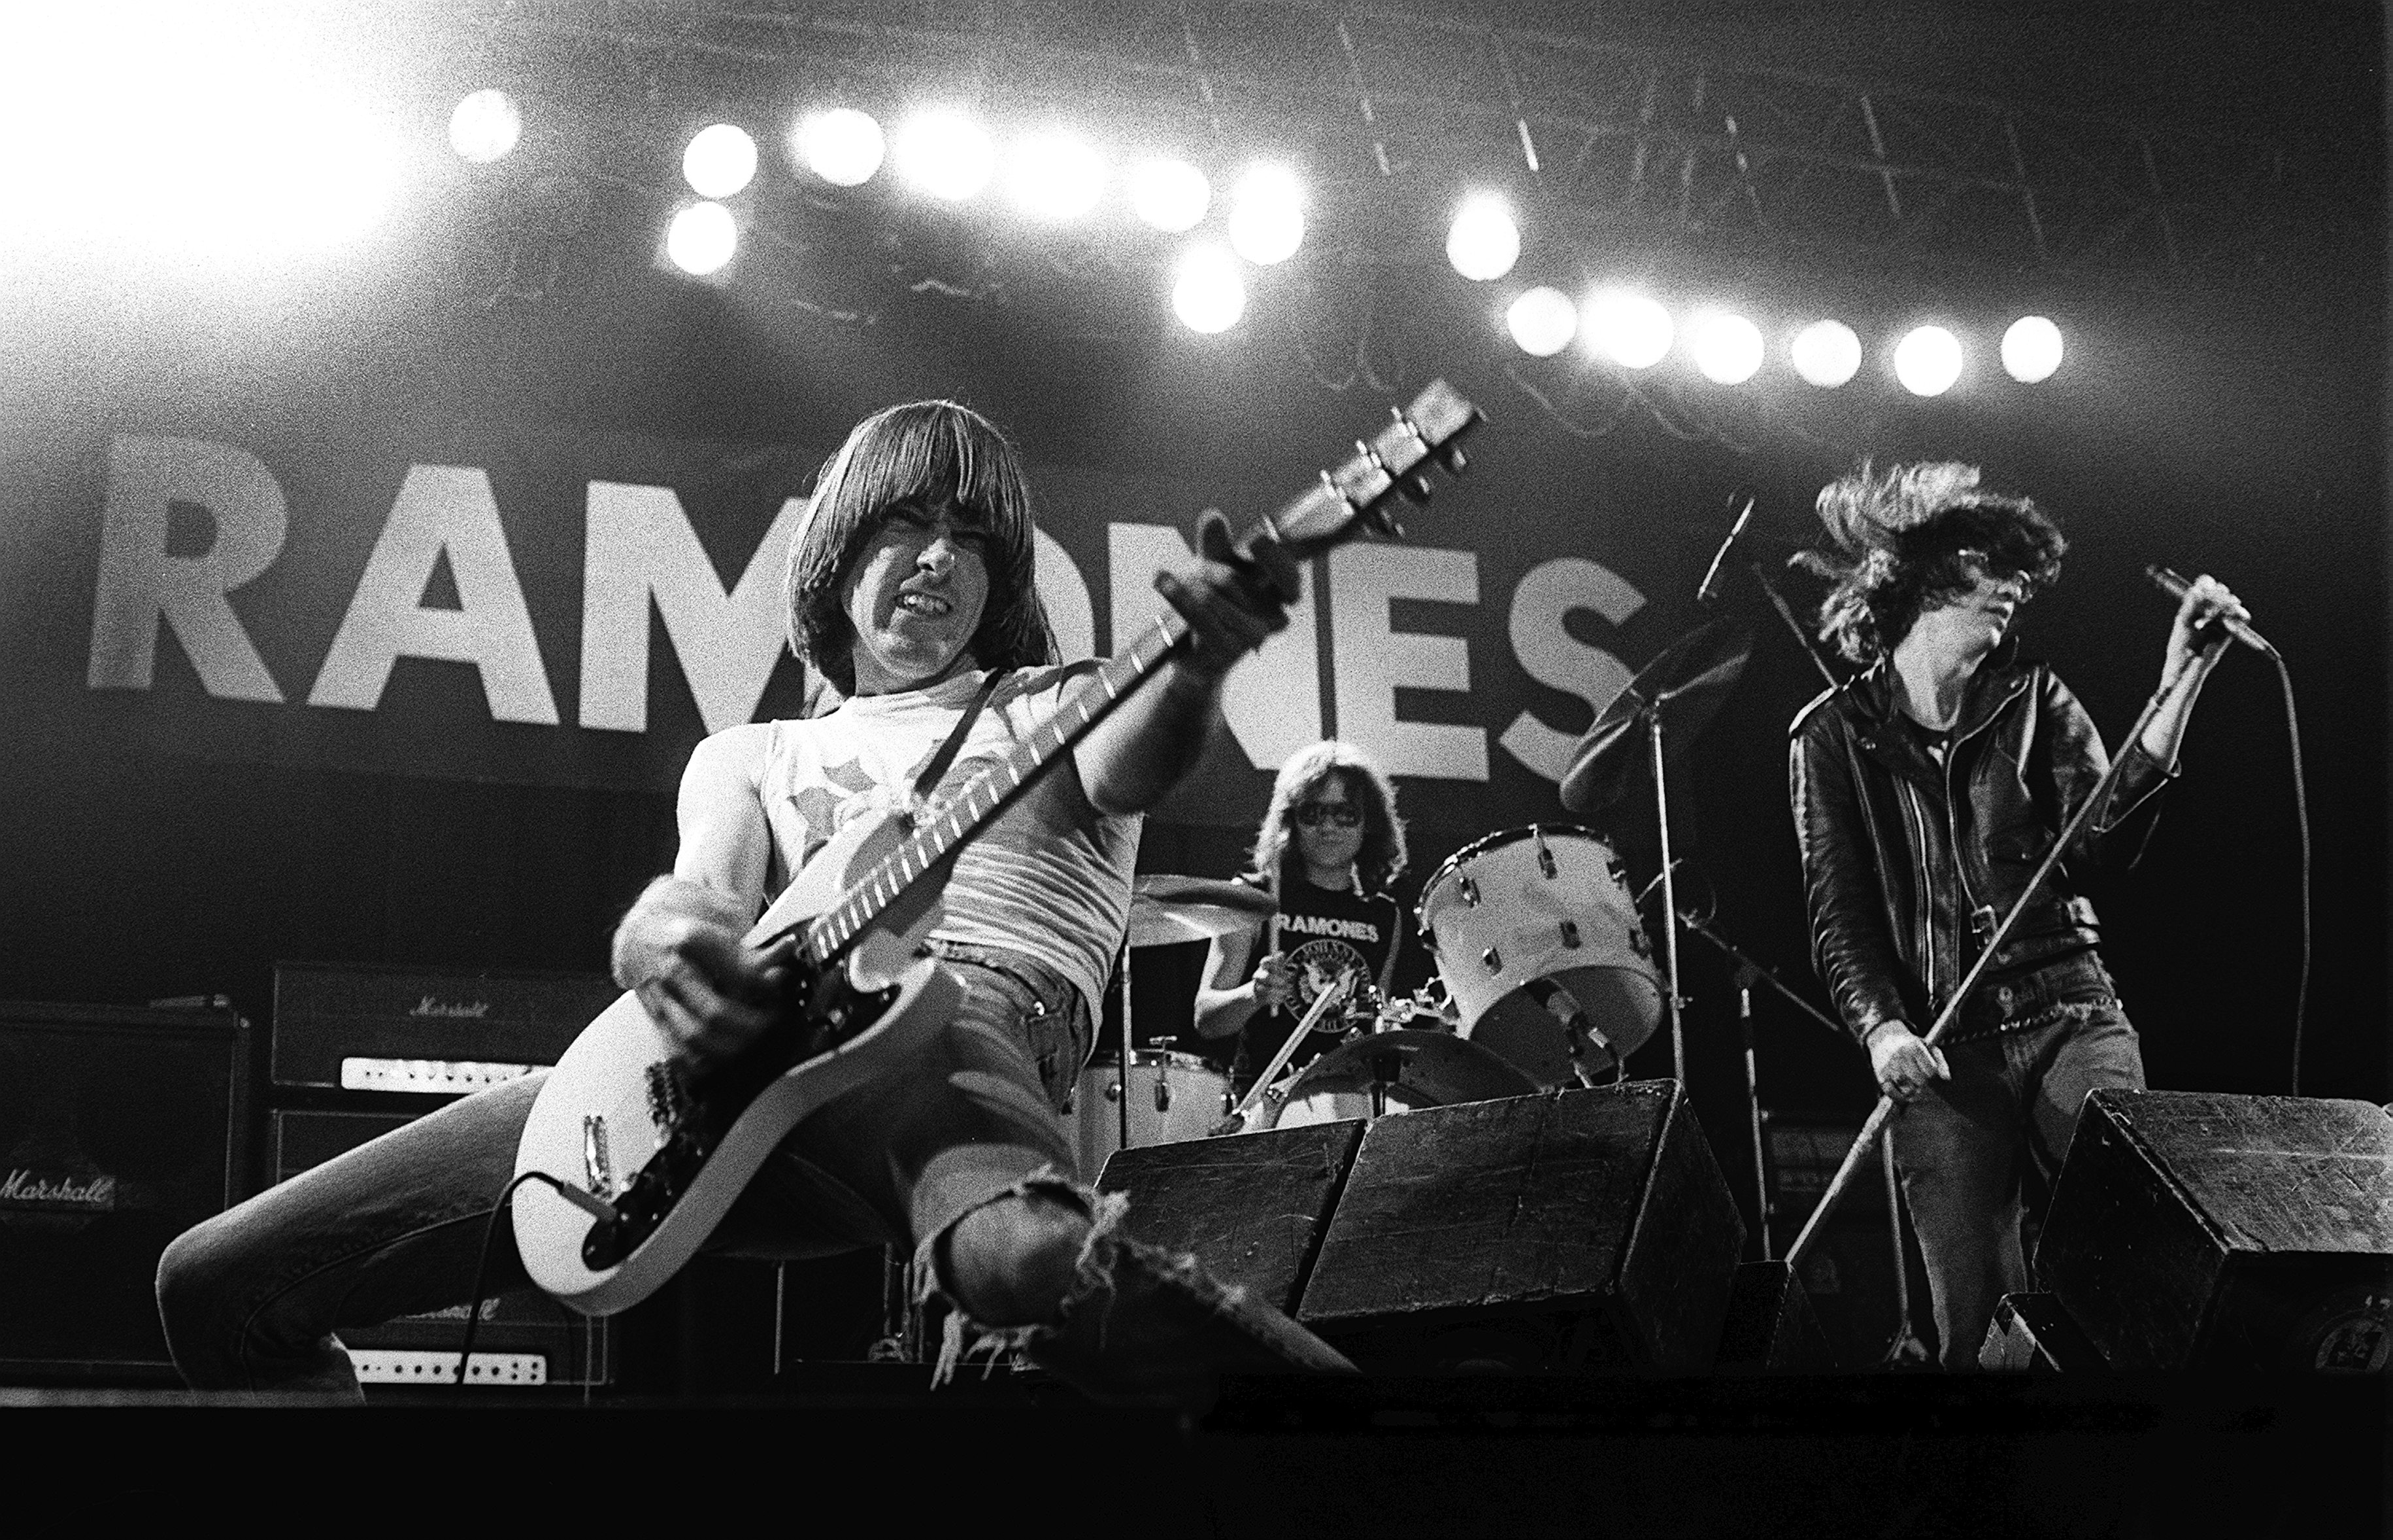 Johnny Ramone No one hated guitar solos more than Johnny Ramone, so it's not surprising he perfected the punk style, packing chords together tightly and leaving no space for freelancing.